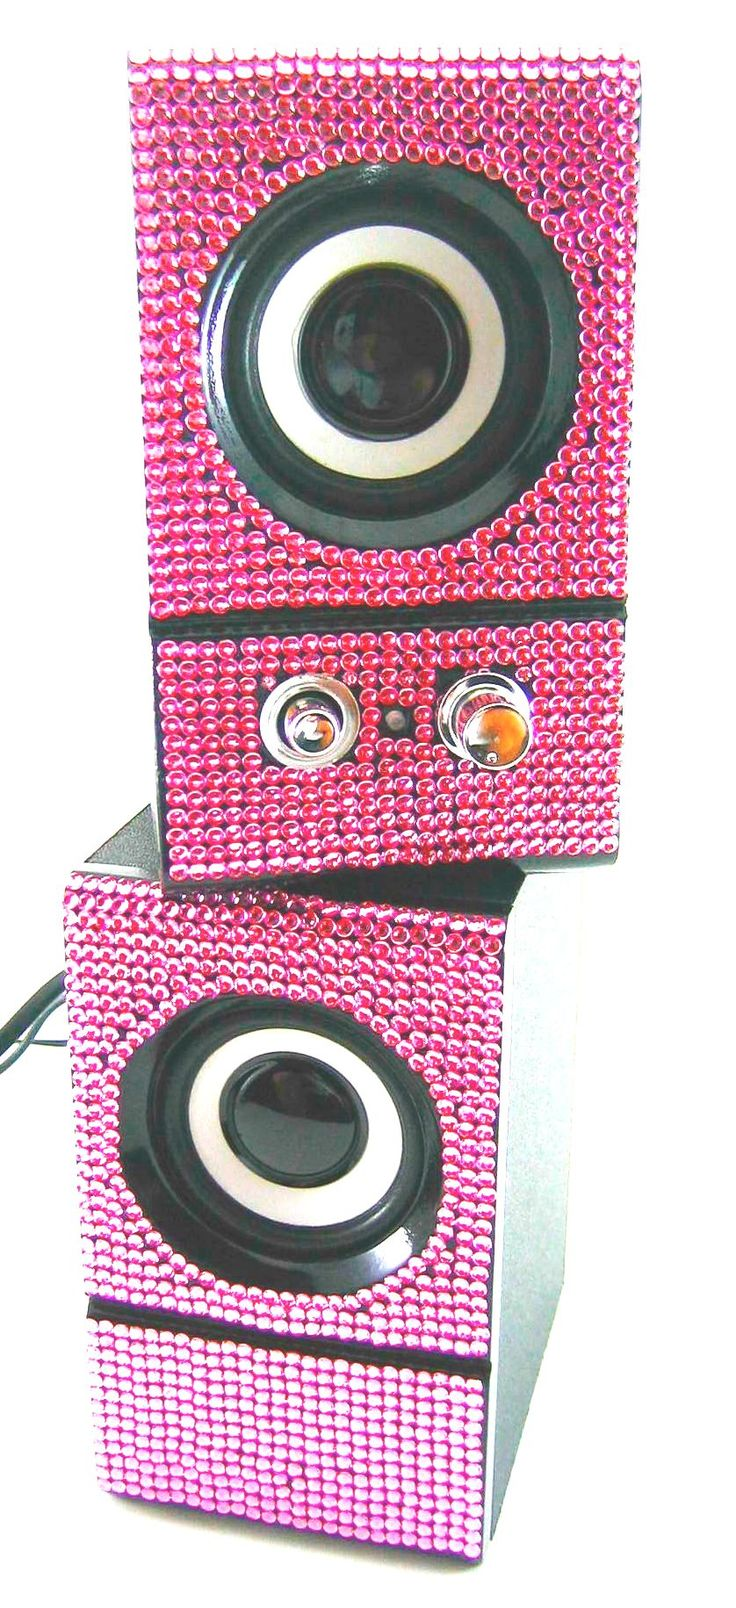 Pink Sparkly Desk Accessories | Pink Crystal Rhinestone Desktop Computer Speakers | eBay